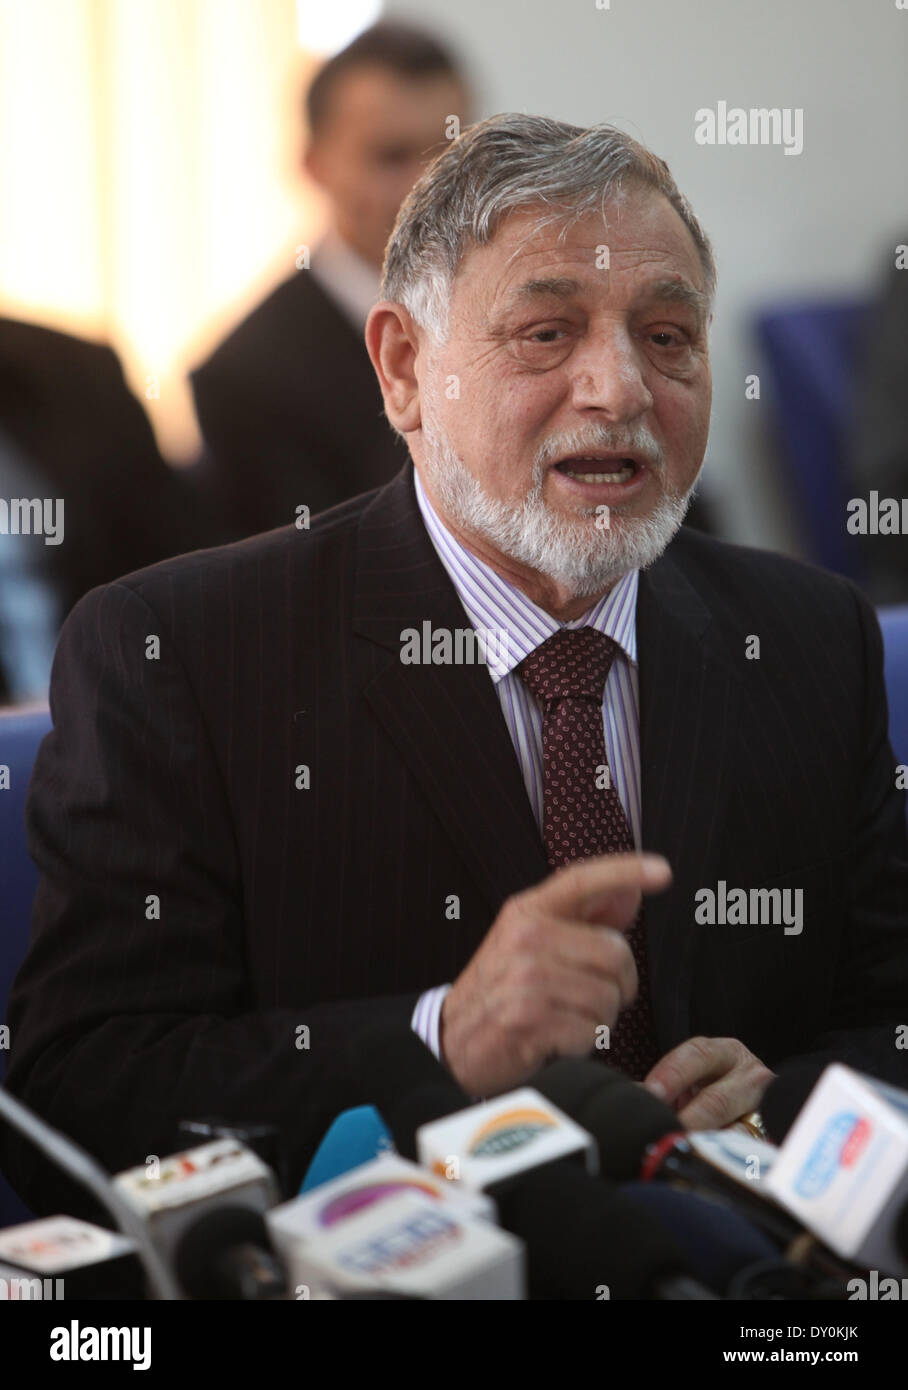 Kabul, Afghanistan. 2nd Apr, 2014. Independent Elections Commission (IEC) chief Ahmad Yousuf Nuristani speaks during a press conference in Kabul, Afghanistan, on April 2, 2014. More than 20 million eligible Afghans will vote for the new president and new provincial assembly members for the next five years, according to the Independent Election Commission (IEC) officials. © Ahmad Massoud/Xinhua/Alamy Live News - Stock Image